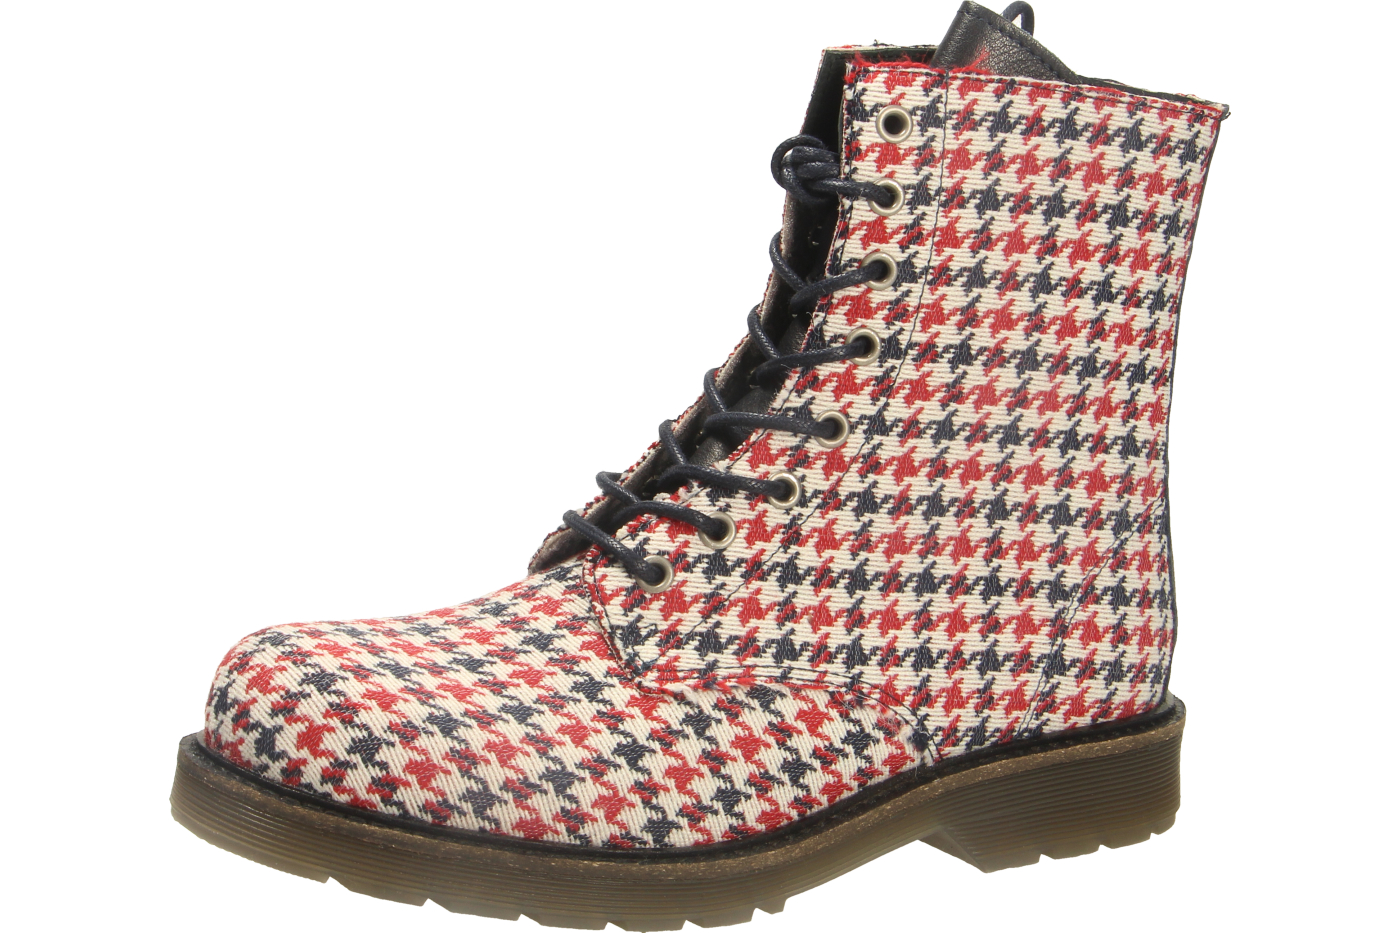 new concept 0a5fc 62dc3 Apple of Eden Stiefel AW19 SUN